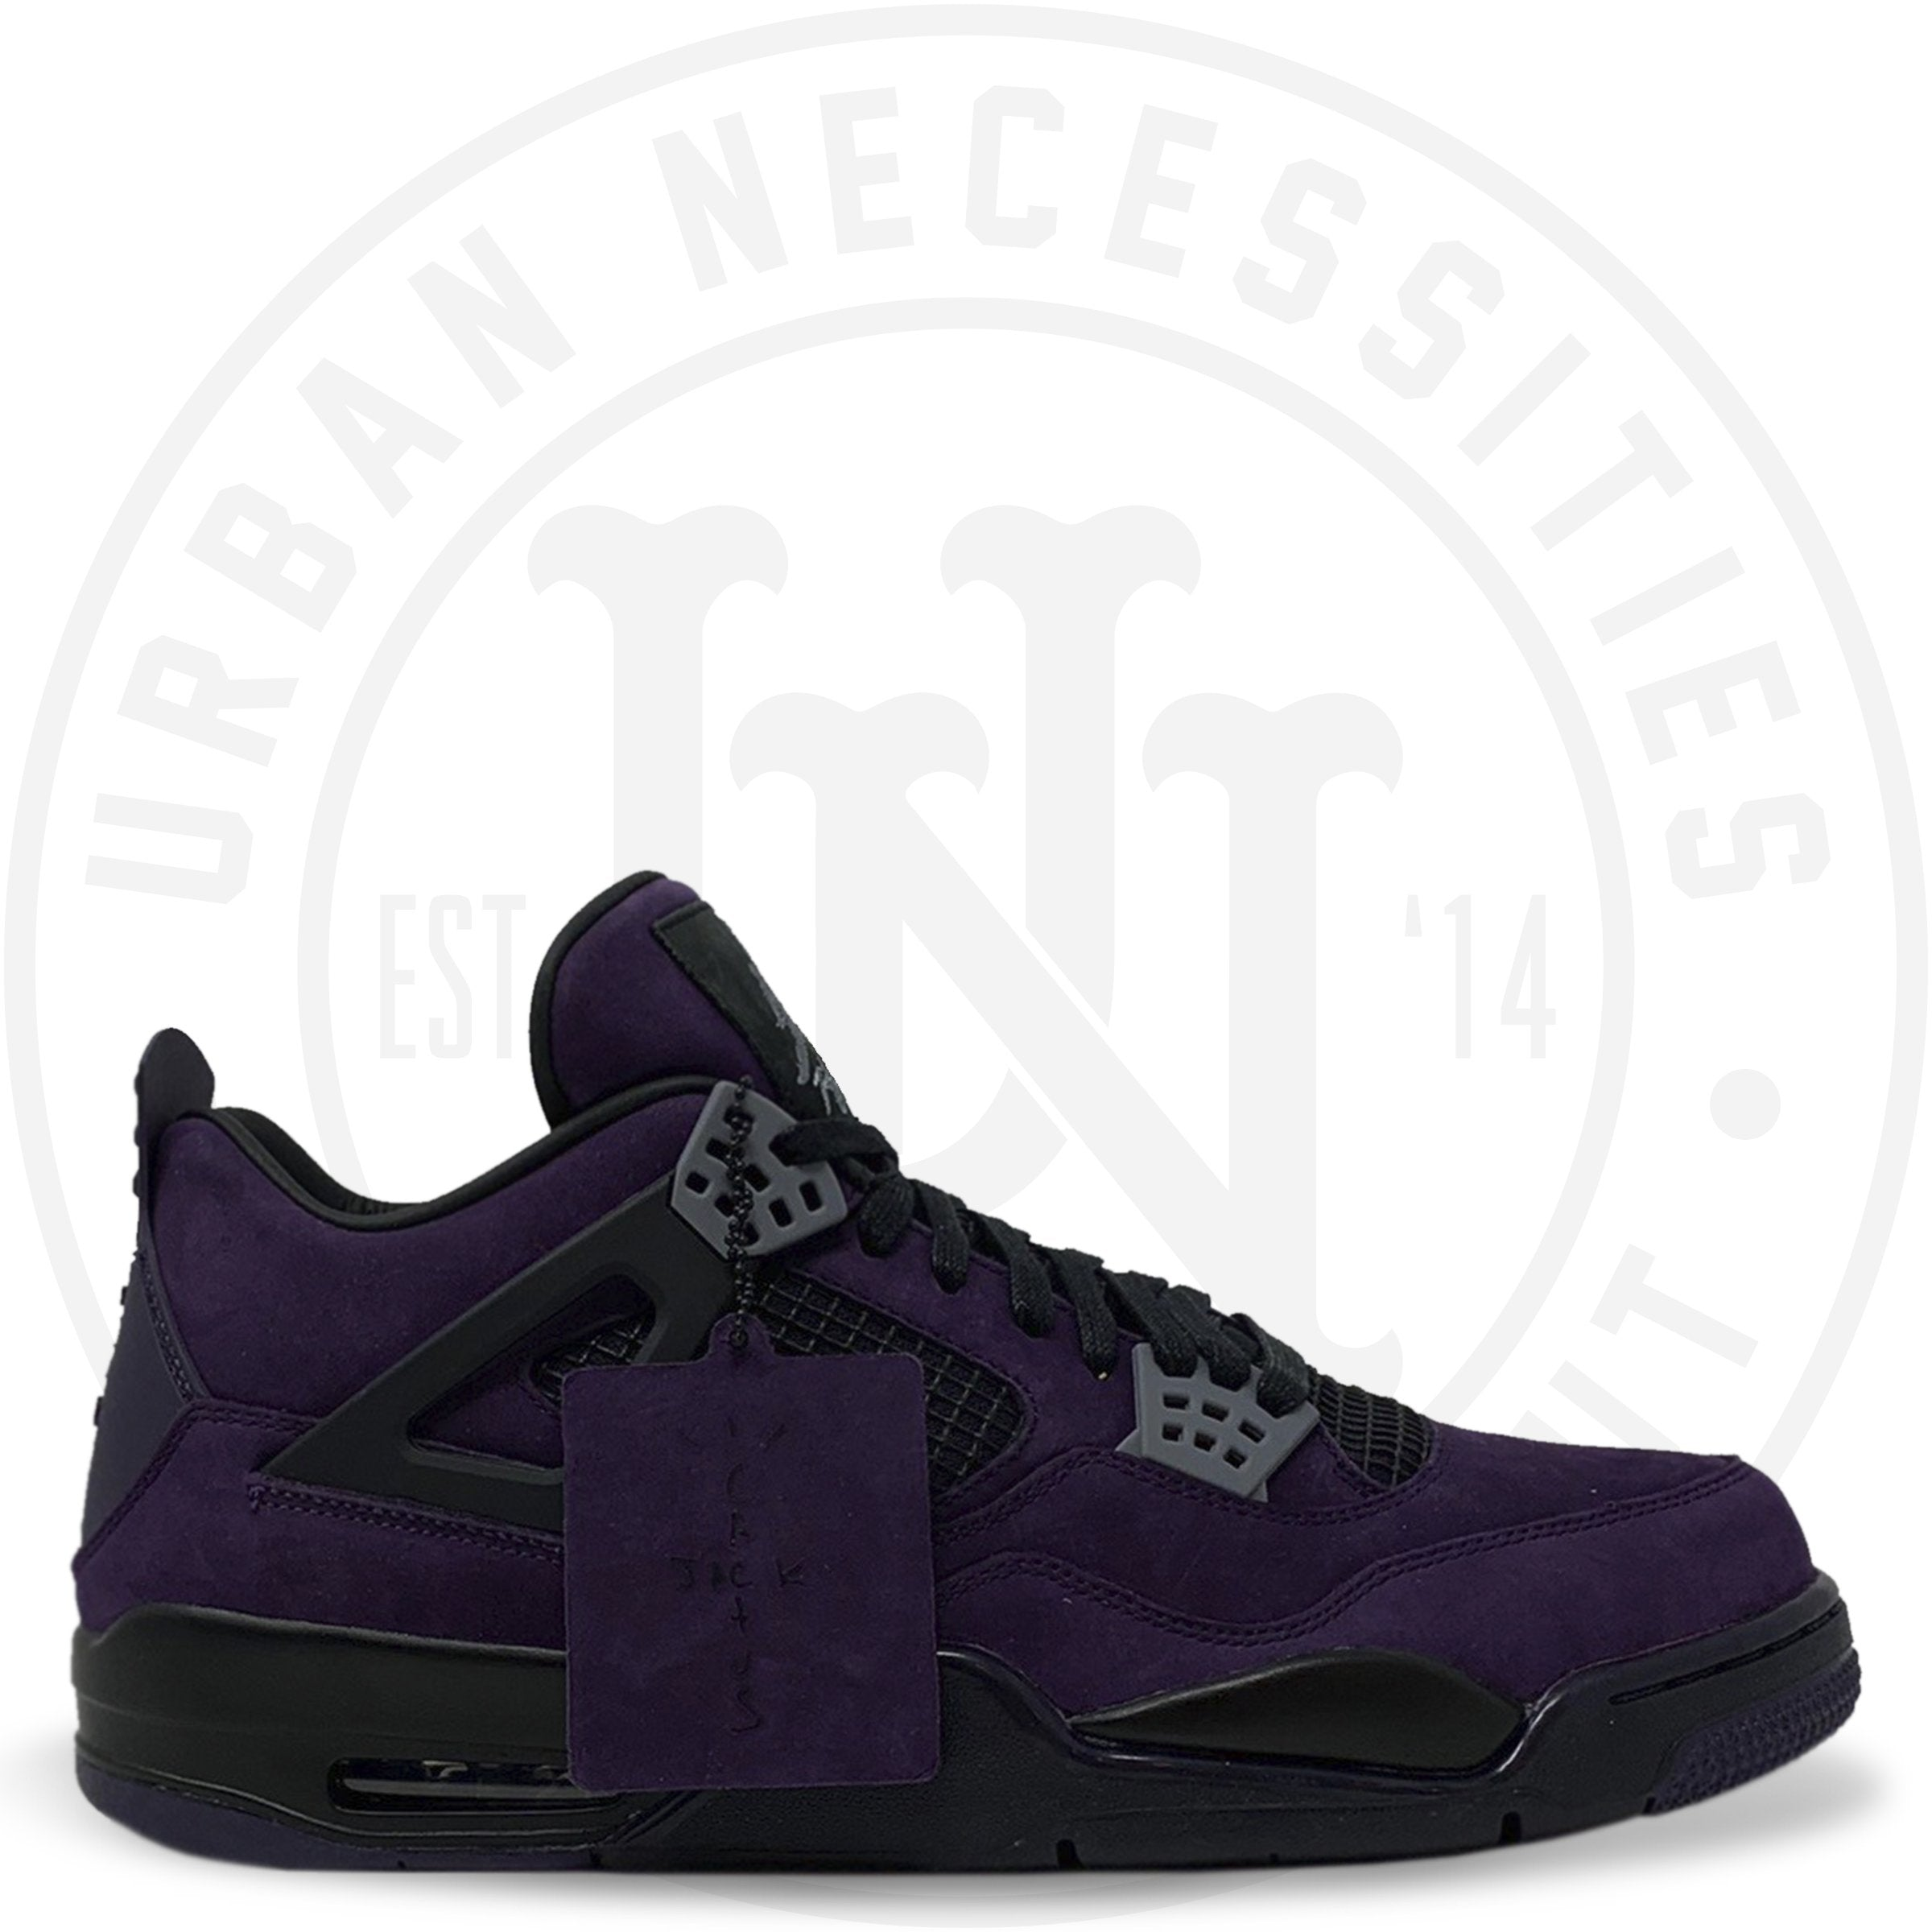 low cost ba12b 00a3a Travis Scott x Air Jordan 4 Retro 'Purple Dynasty V/Red Black' AJ4-7766041